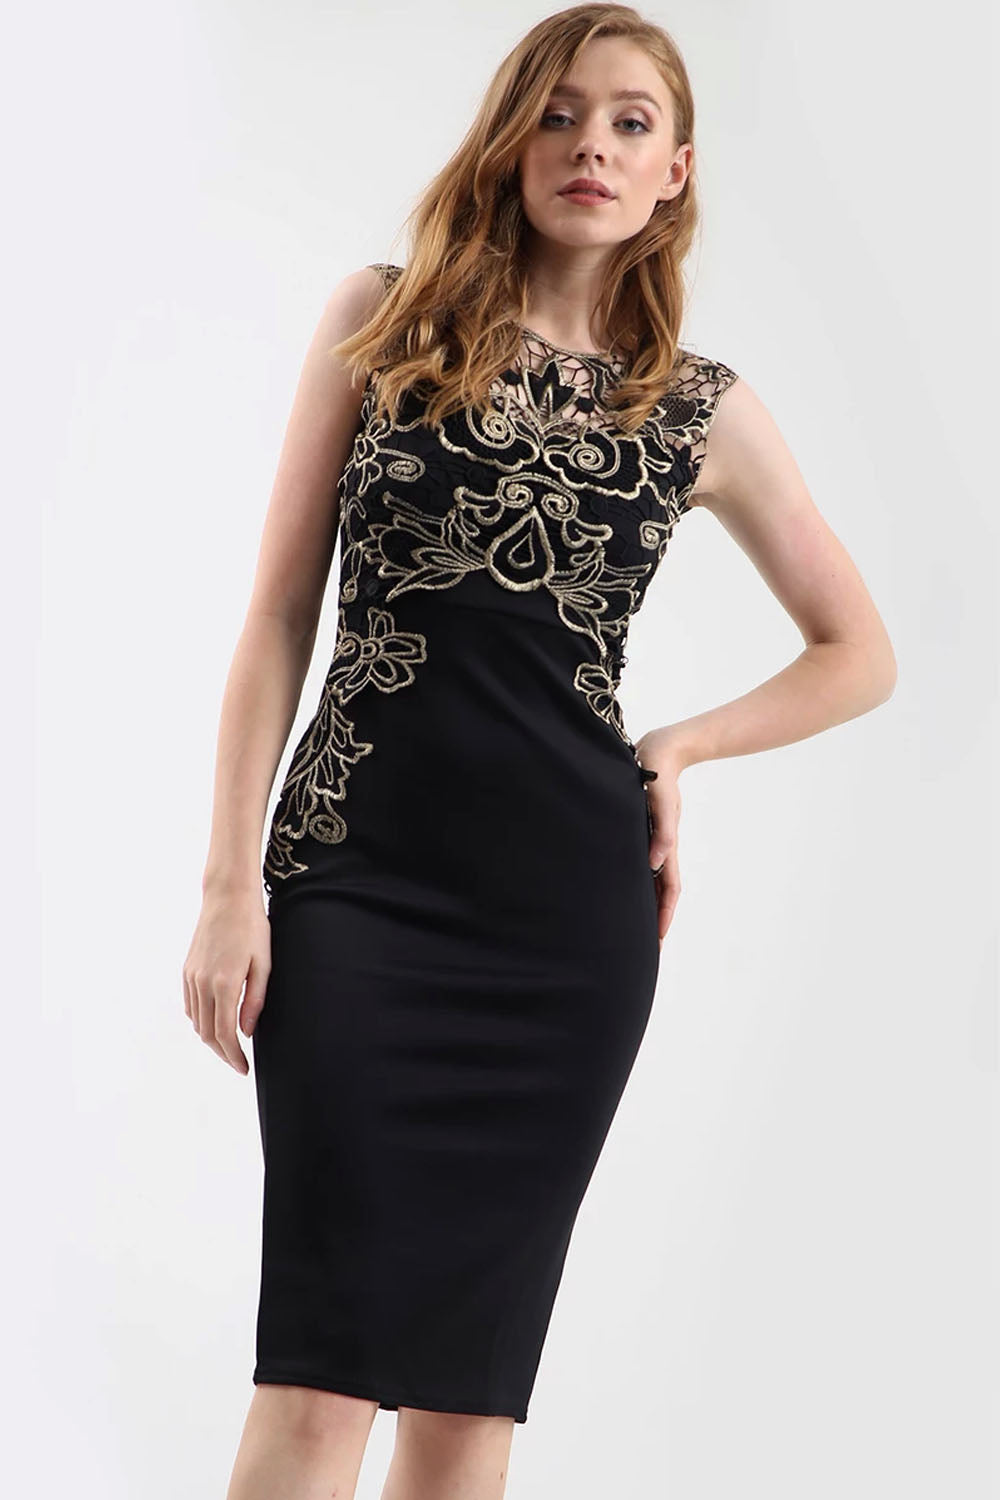 Gold Floral Lace Trim Black Midi Bodycon Dress - bejealous-com